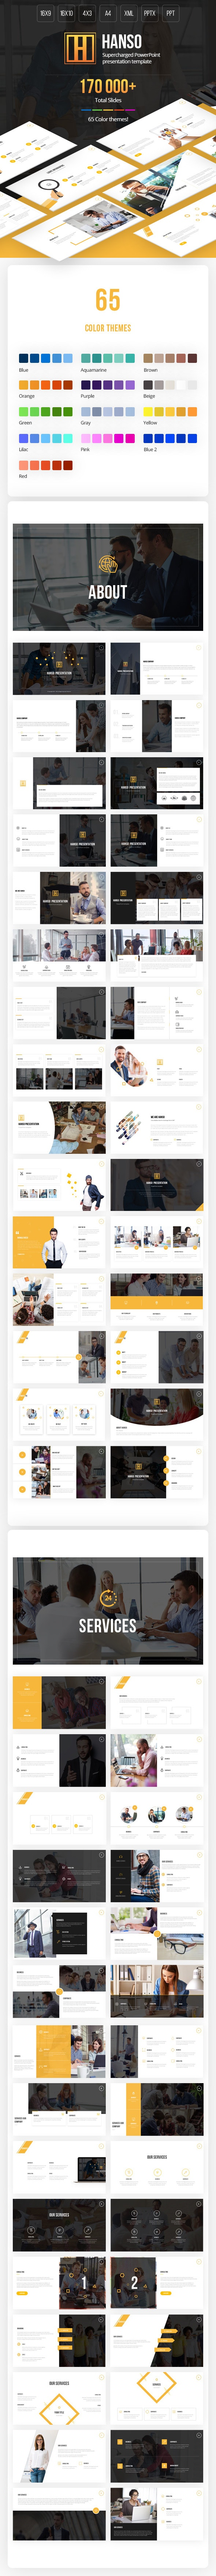 Hanso Multipurpose PowerPoint Template - Business PowerPoint Templates